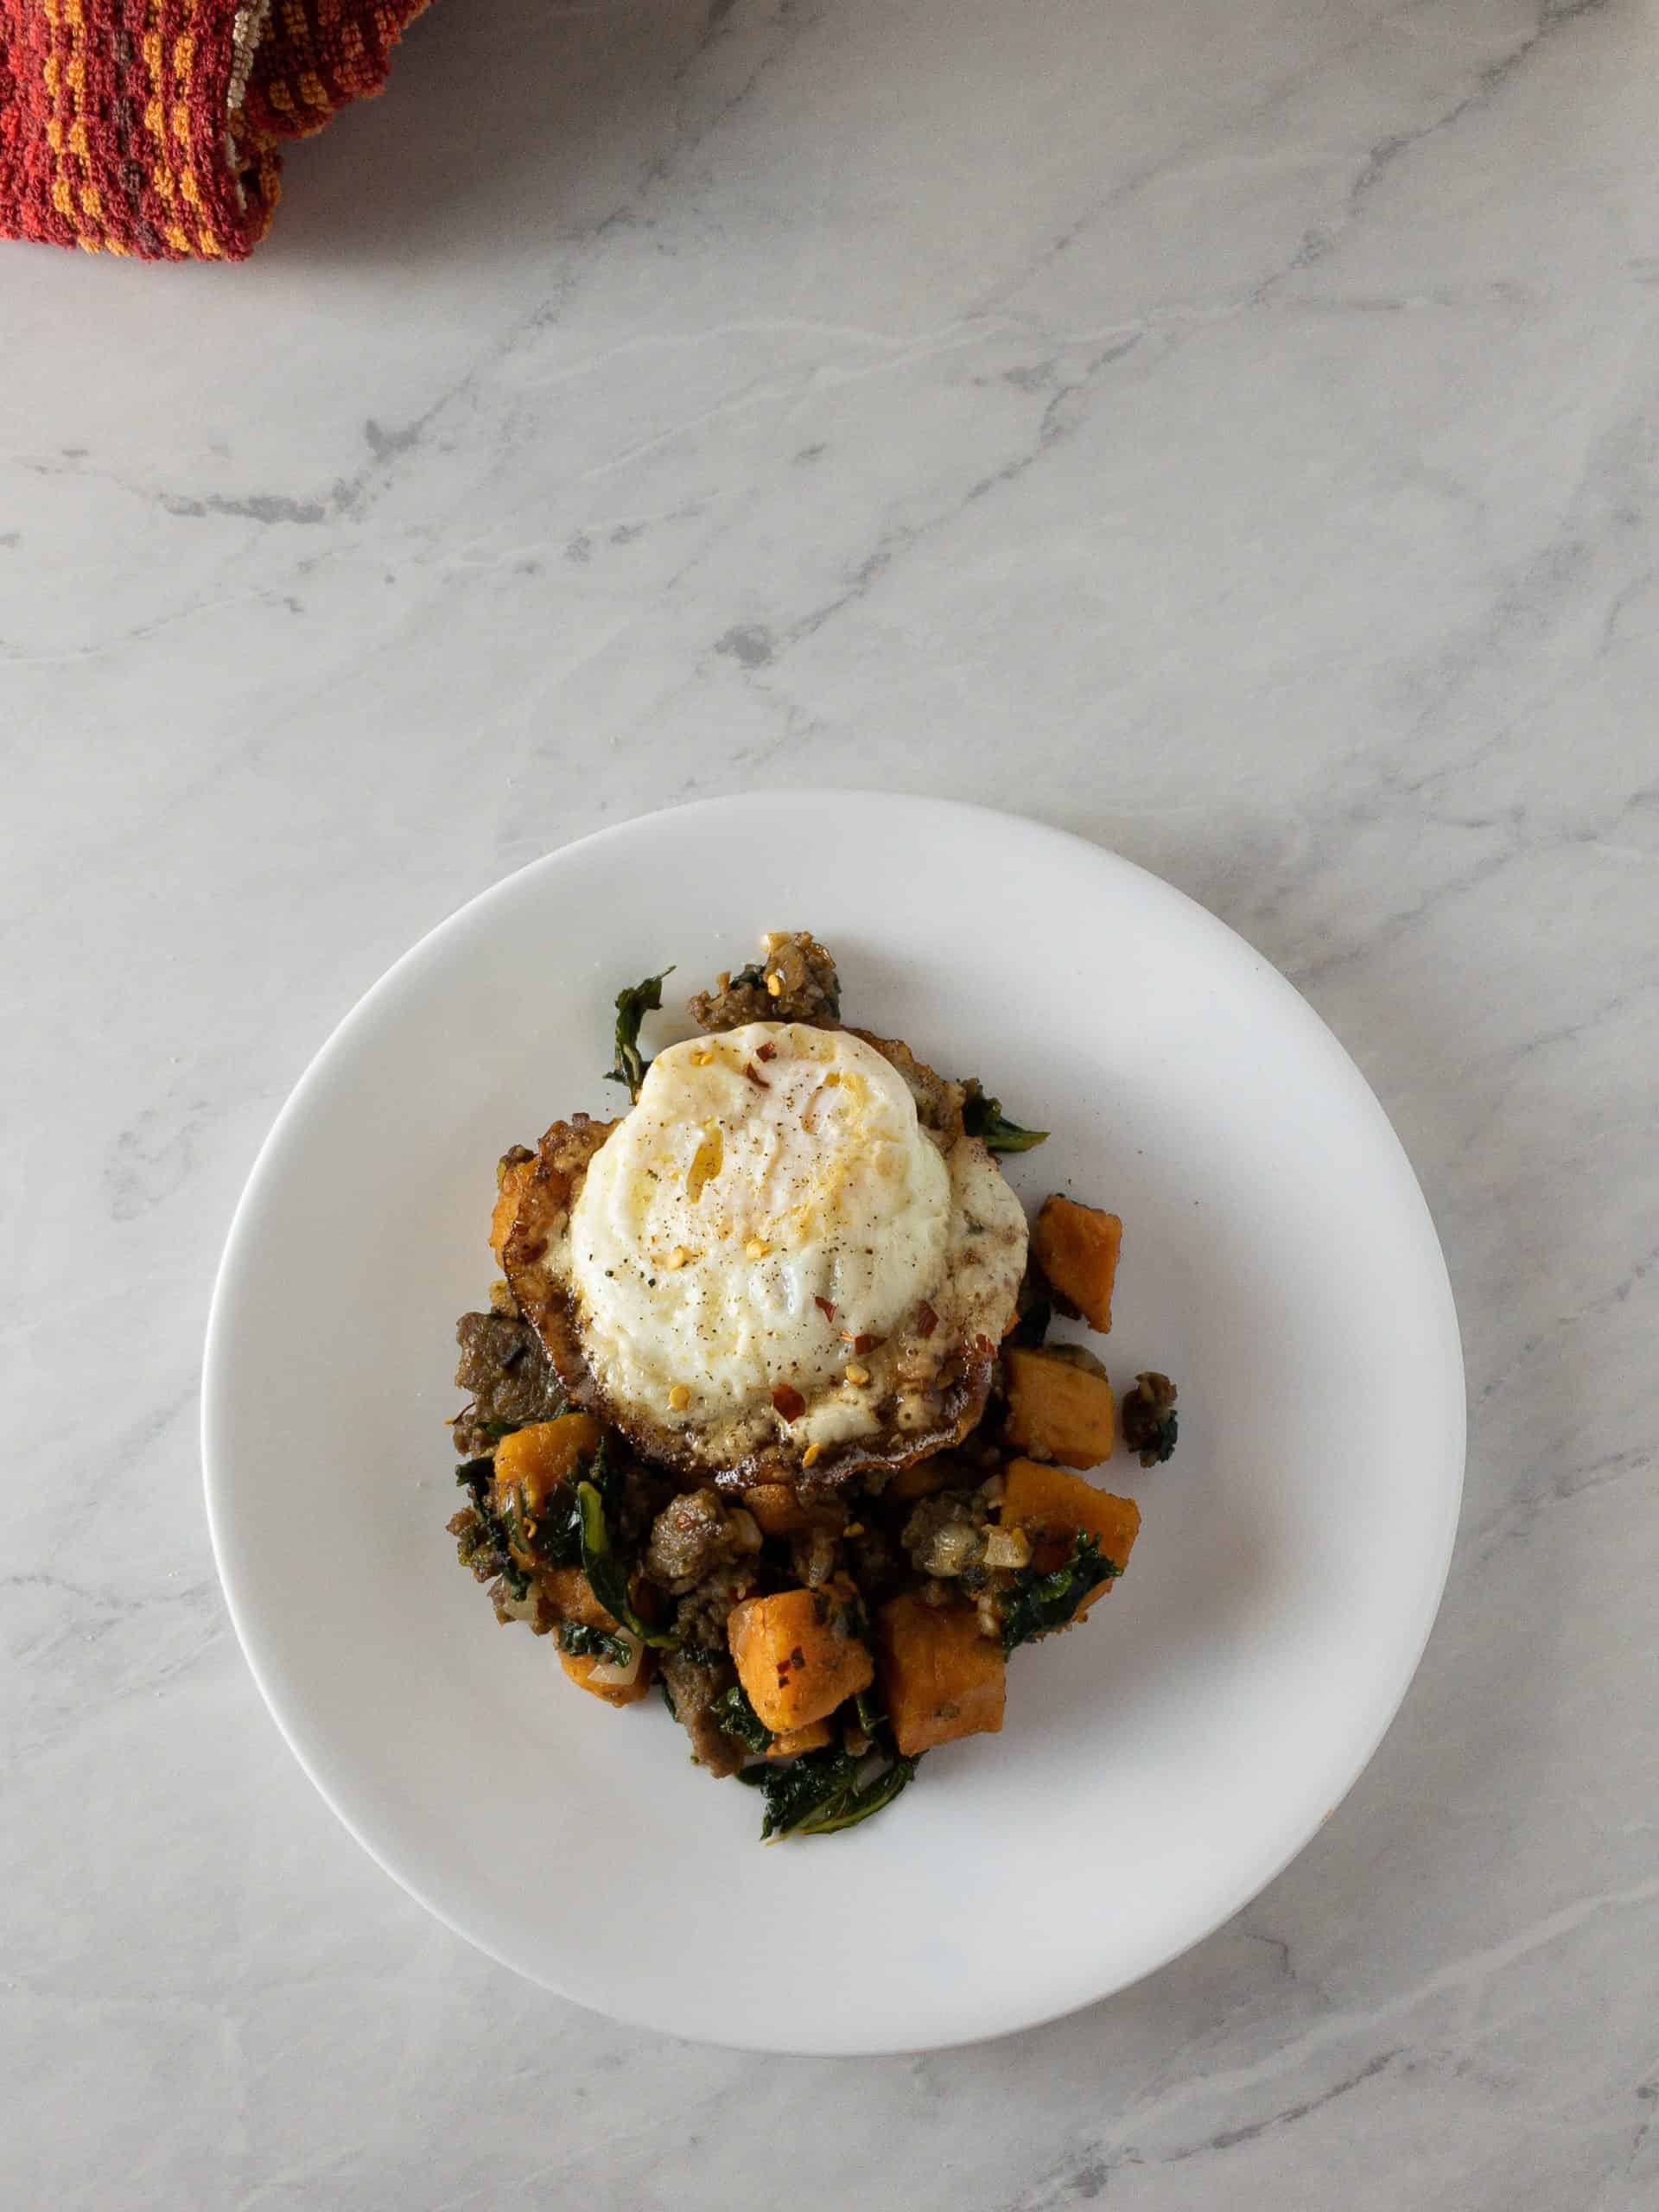 Spicy Sweet Potato Hash topped with a fried egg on a white plate.